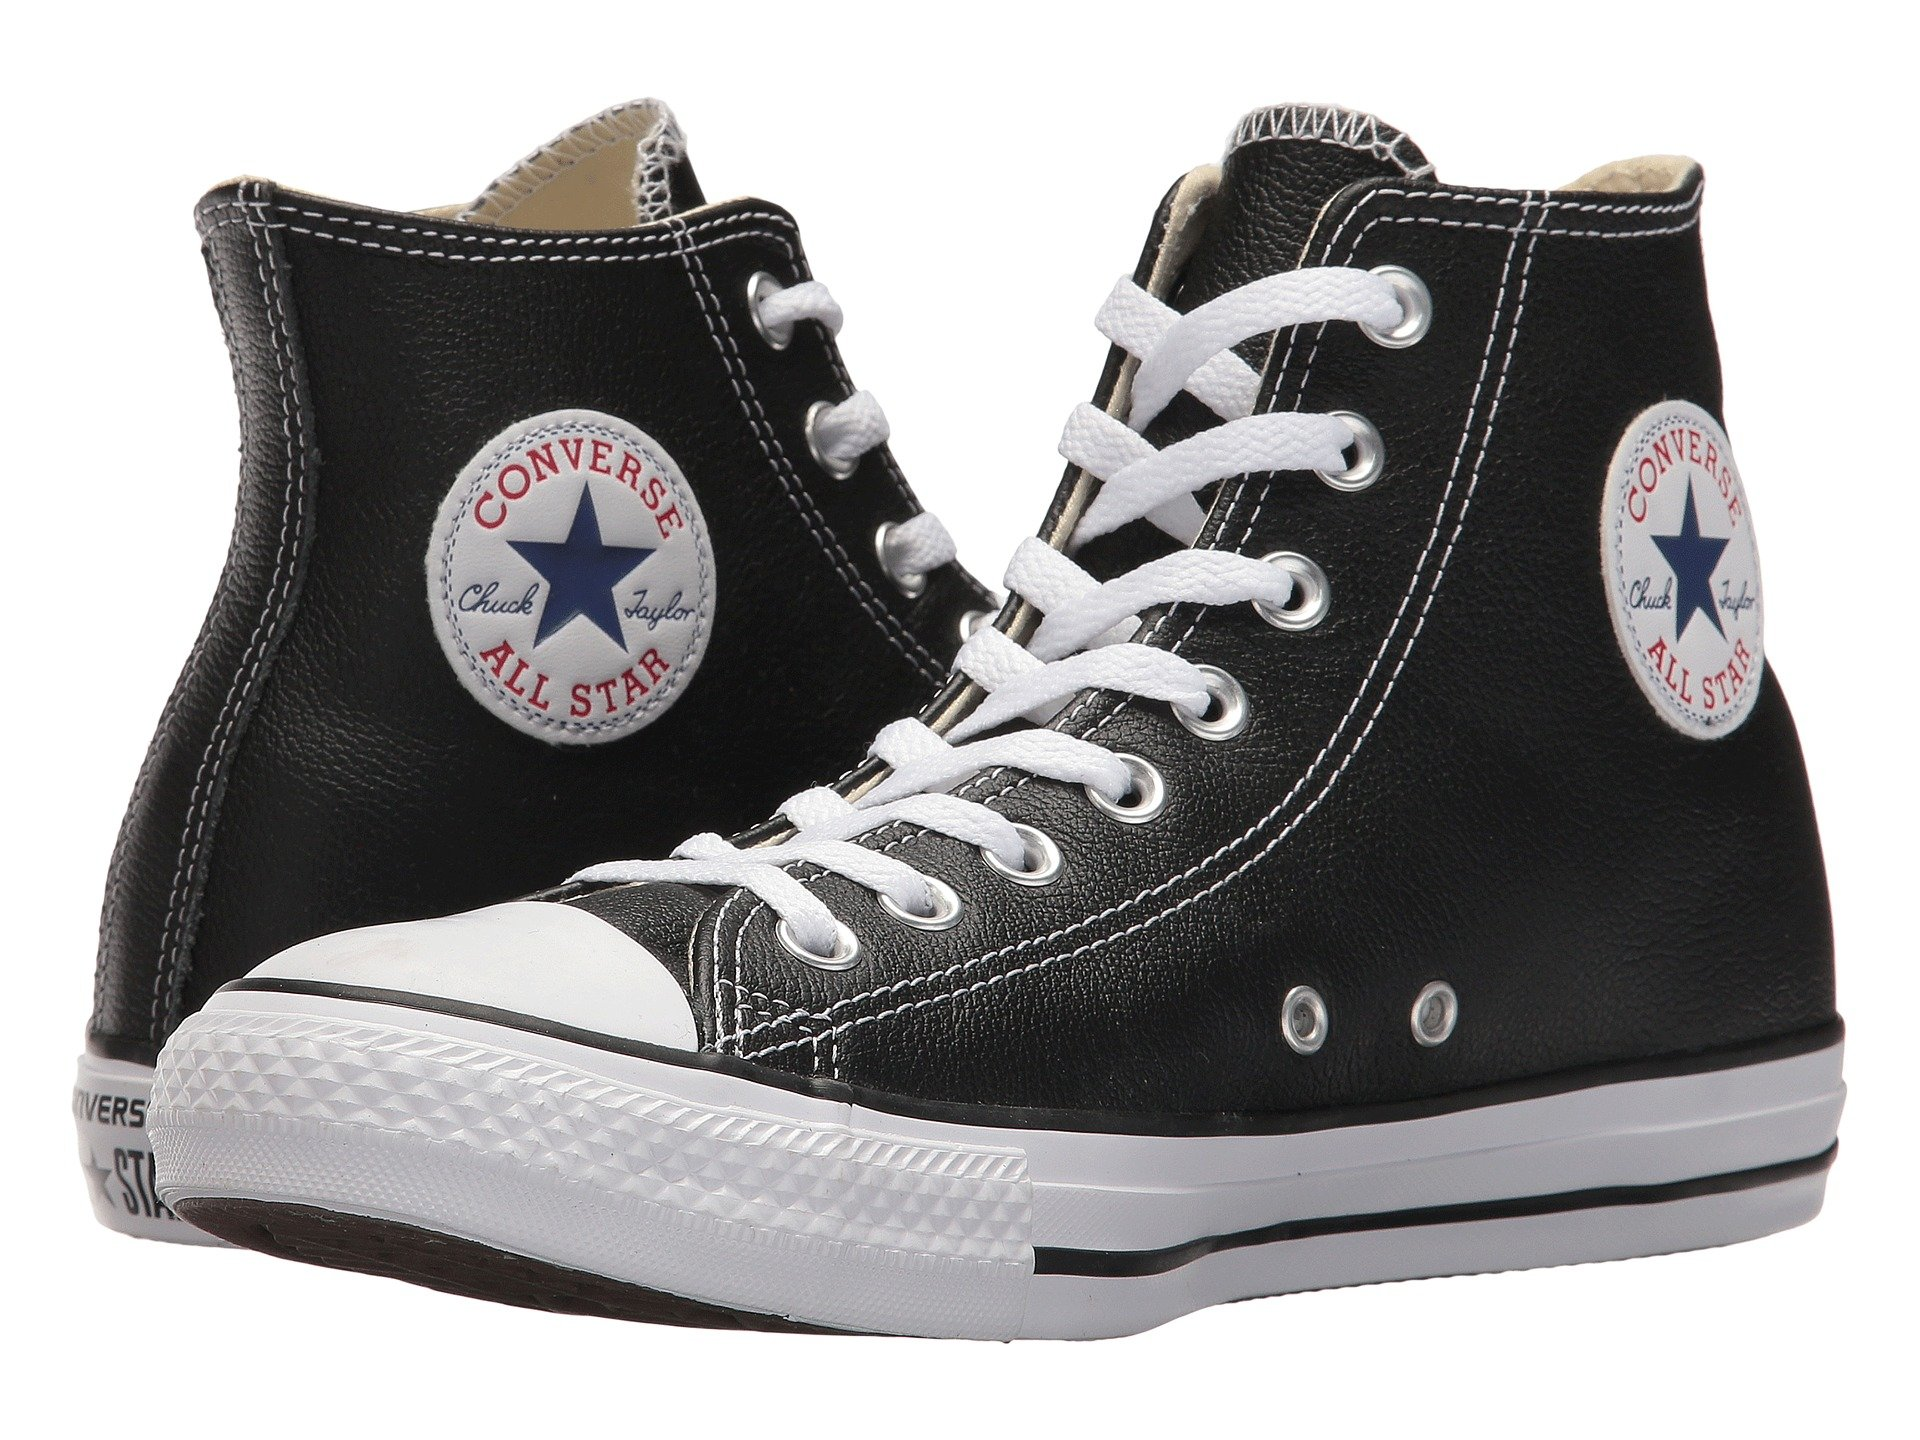 839859ac35c7 597. Converse. Chuck Taylor® All Star® Leather Hi